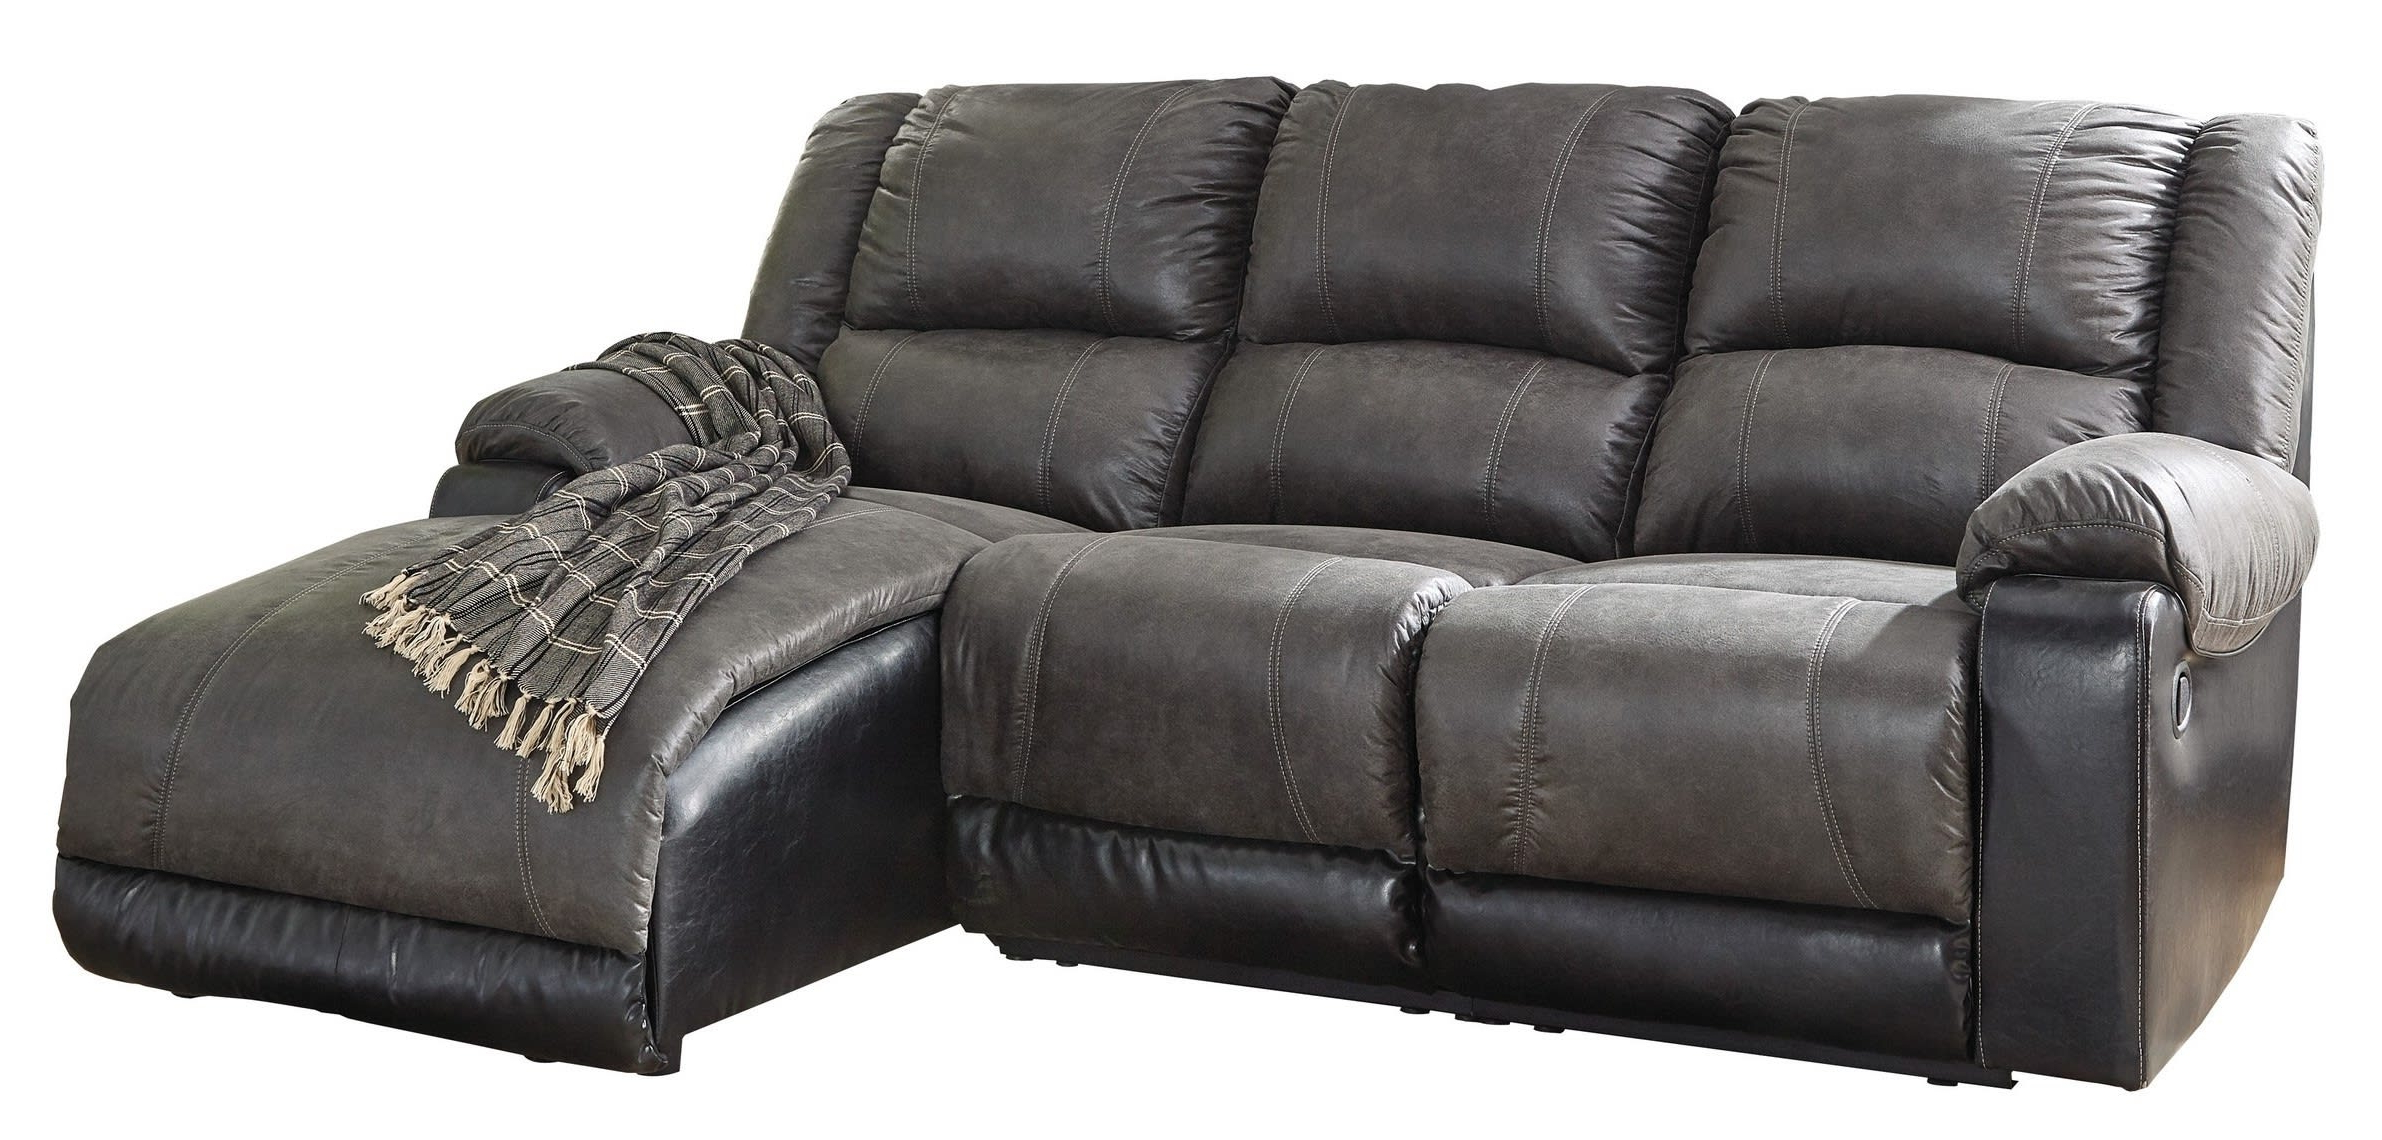 Dulce Right Sectional Sofas Twill Stone For Well Known Signature Designashley Nantahala Slate 3 Piece Right (View 15 of 20)